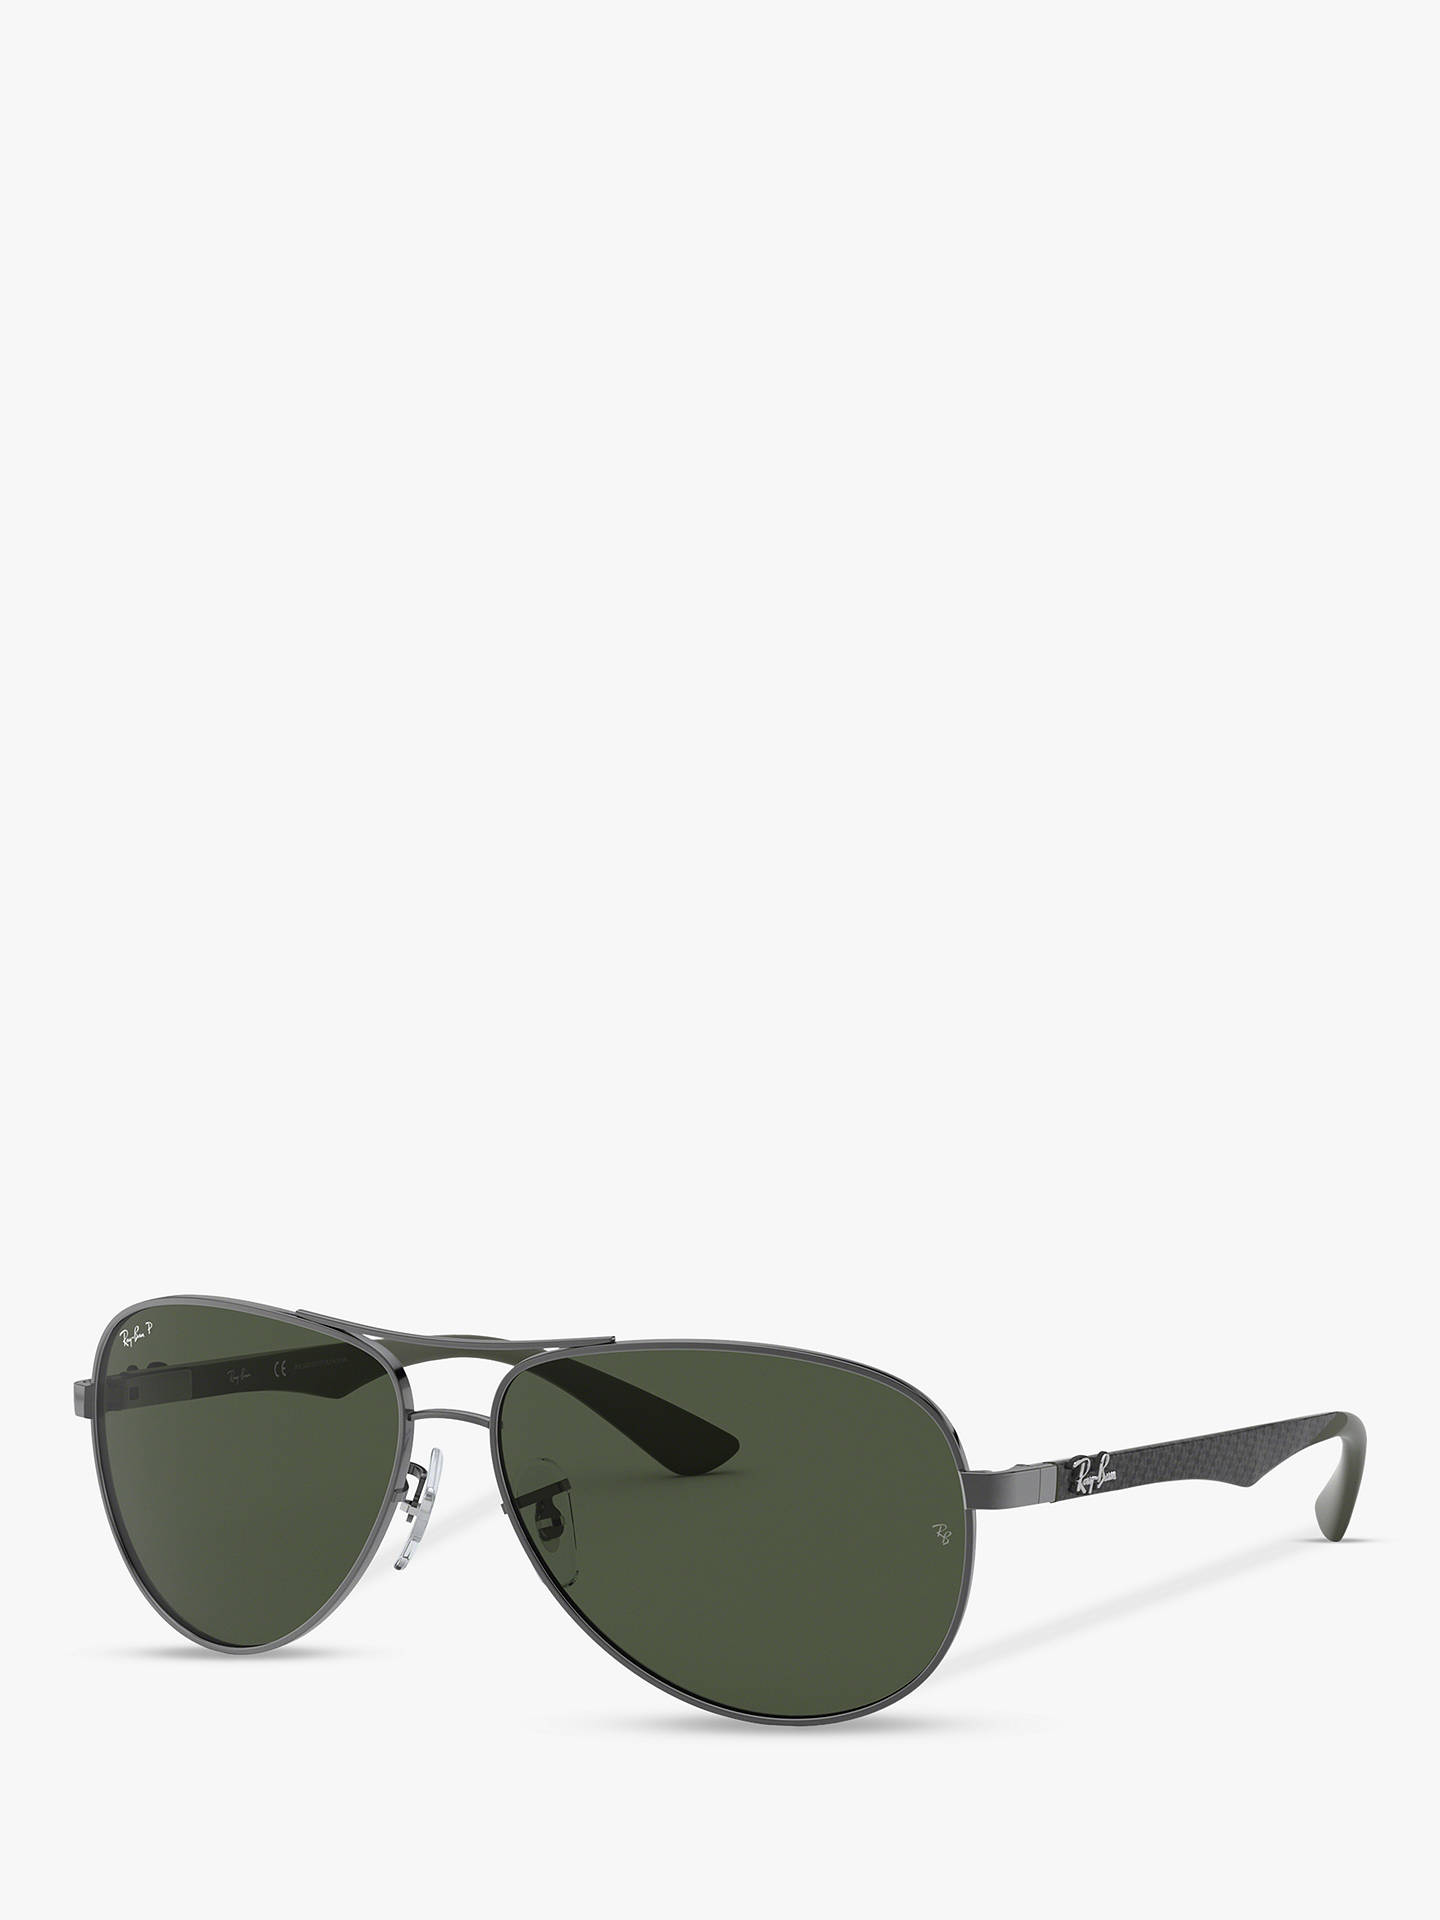 9782ce7b7e0 BuyRay-Ban RB8313 Polarised Aviator Sunglasses